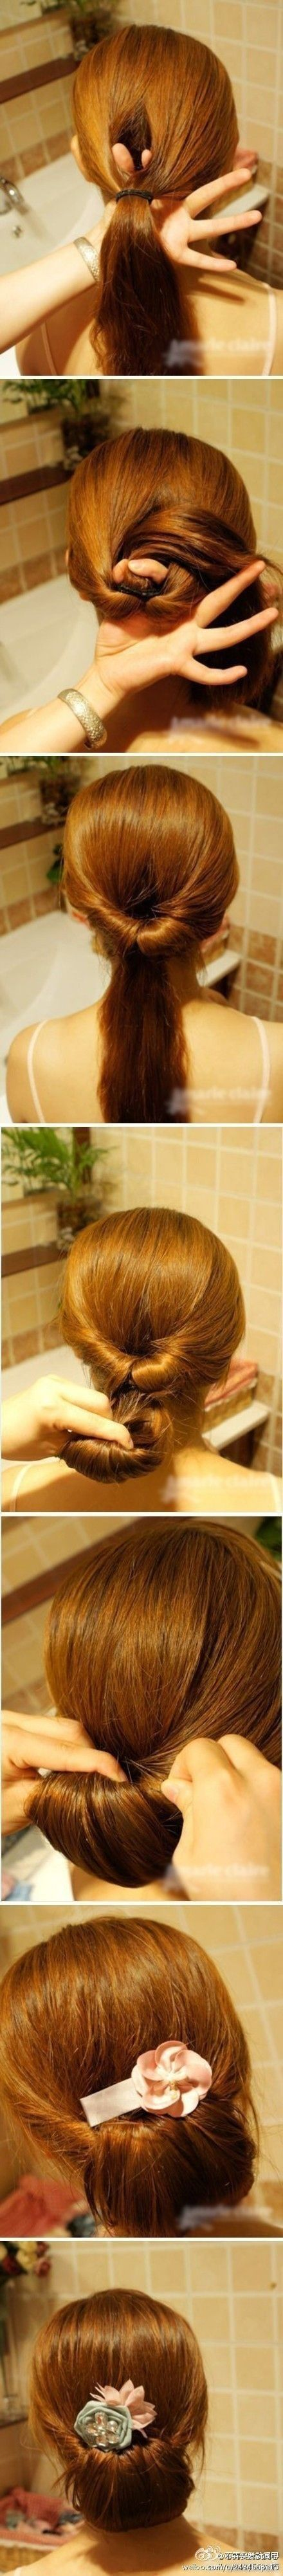 Chignon How-To